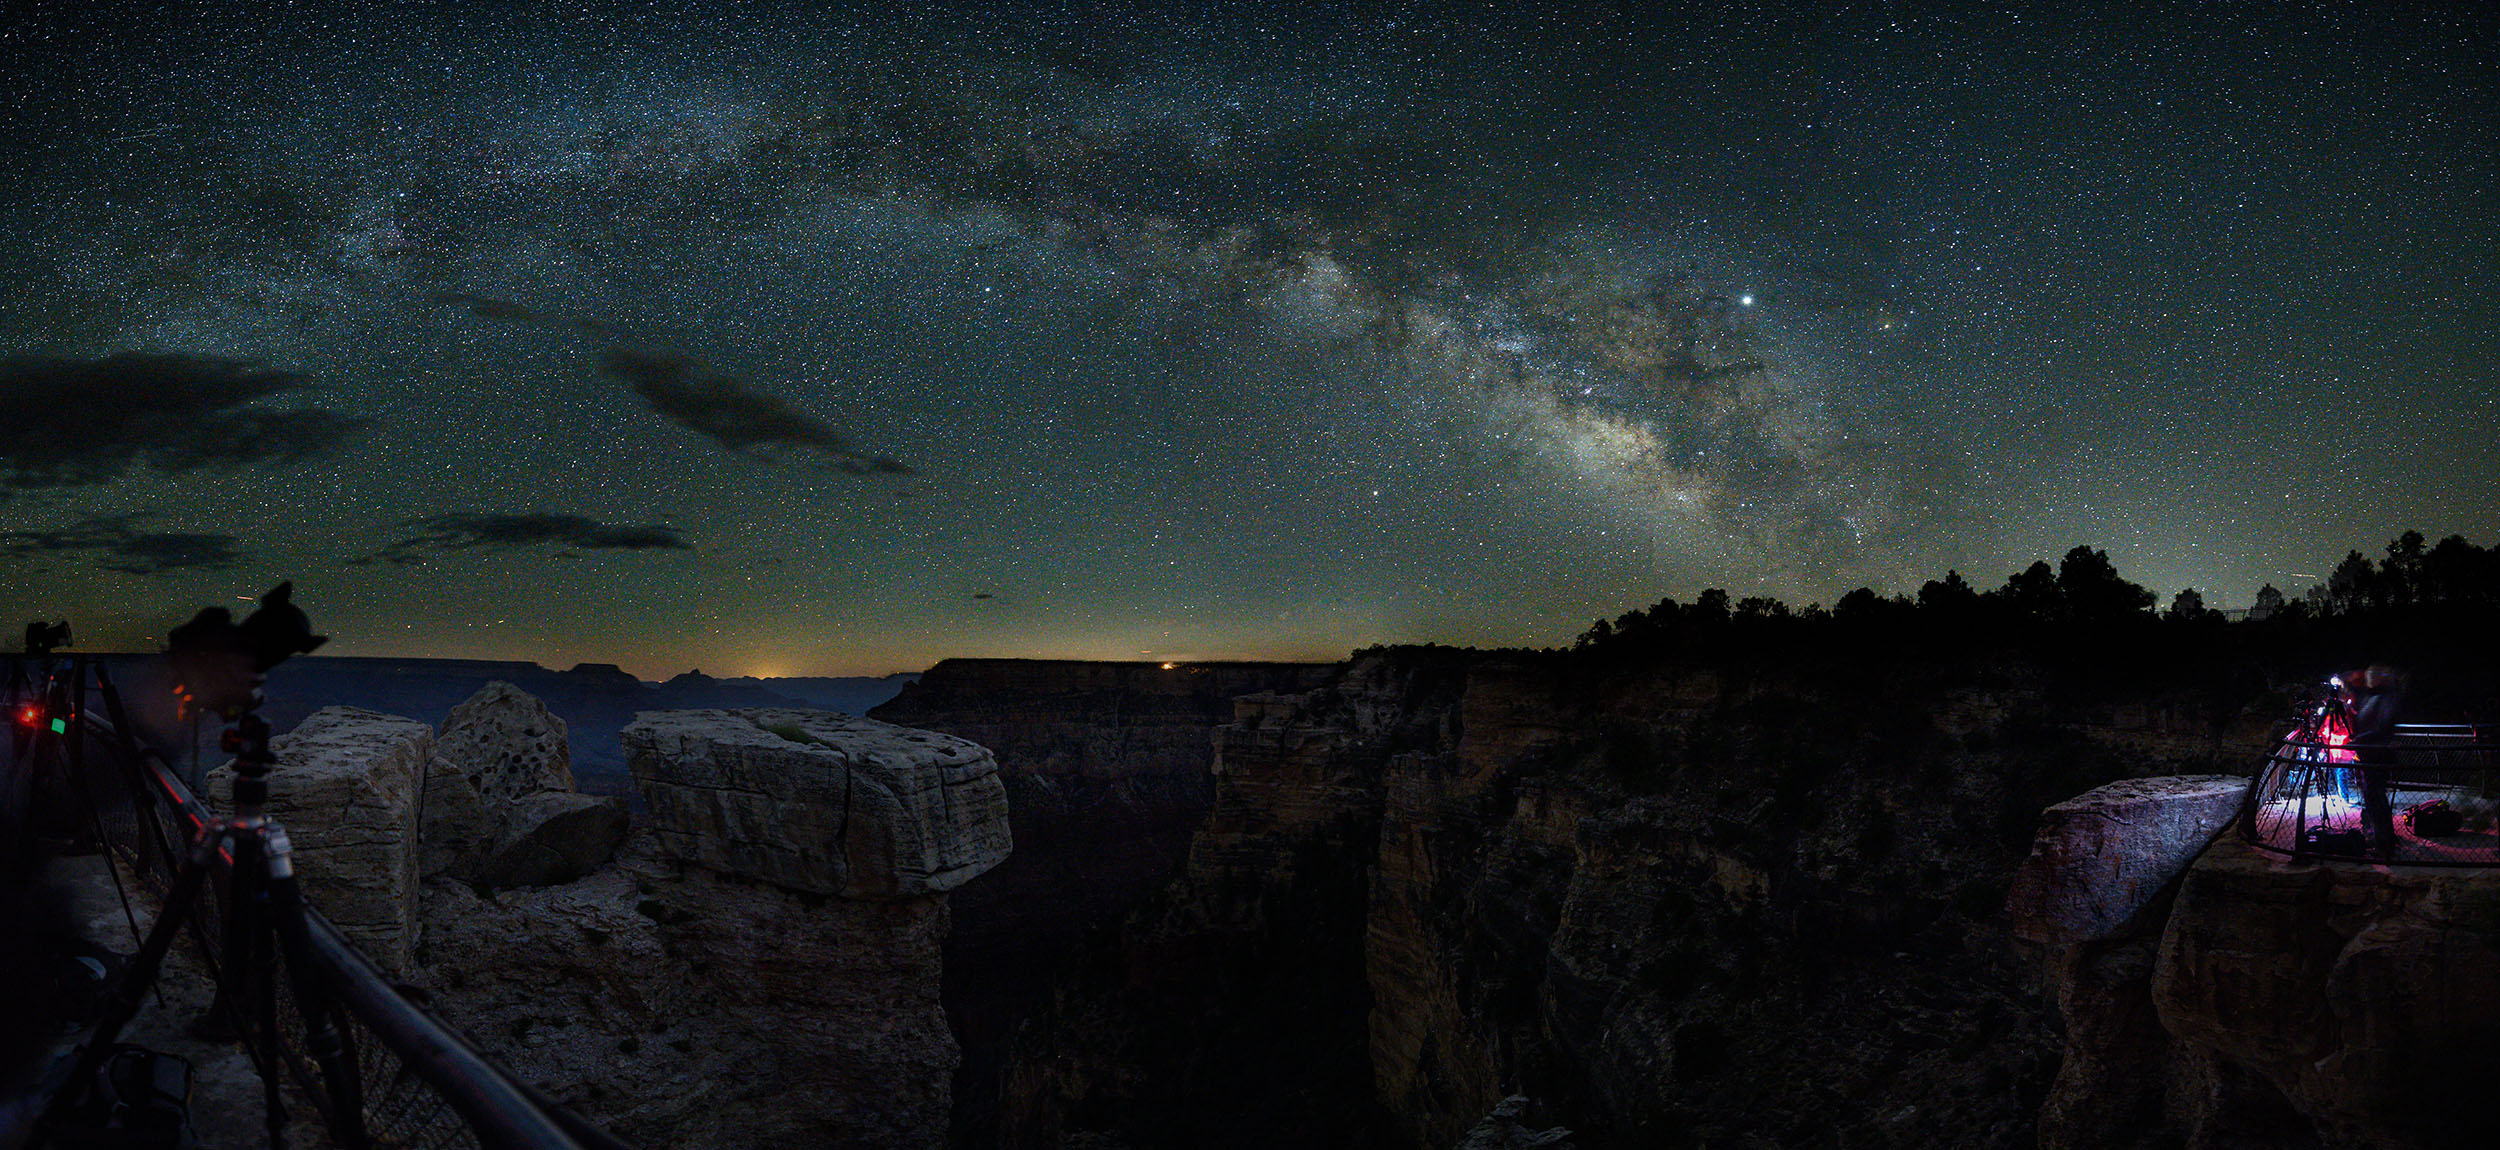 Photographing the Milky Way at Mather Point. © 2019 Gabriel Biderman.